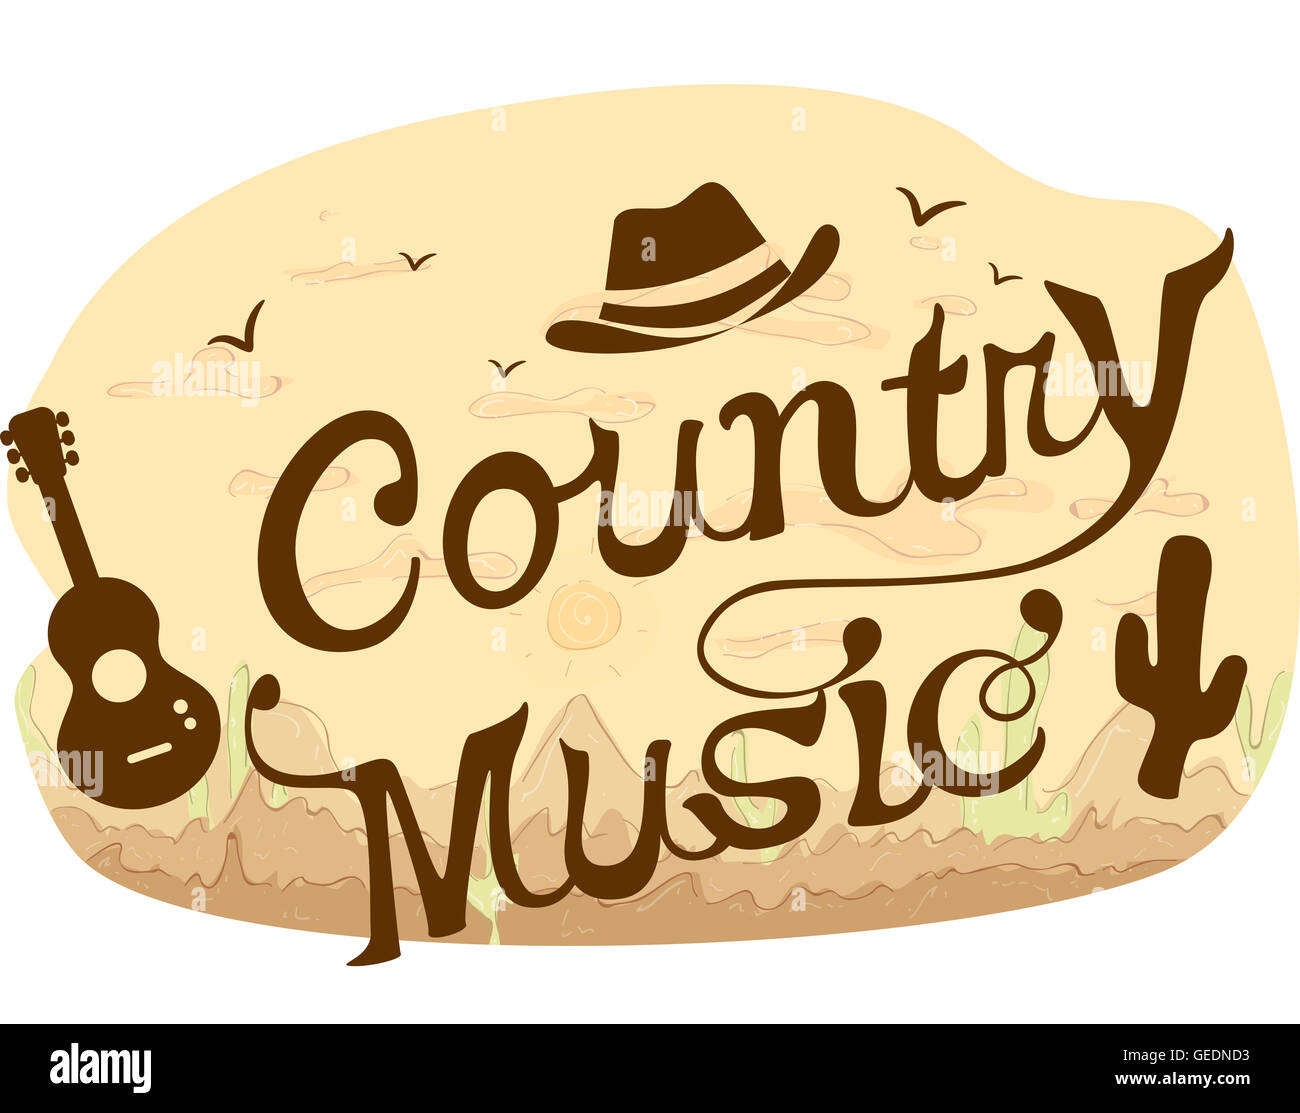 Typography Illustration Featuring Words Country Music Buy Folk Art